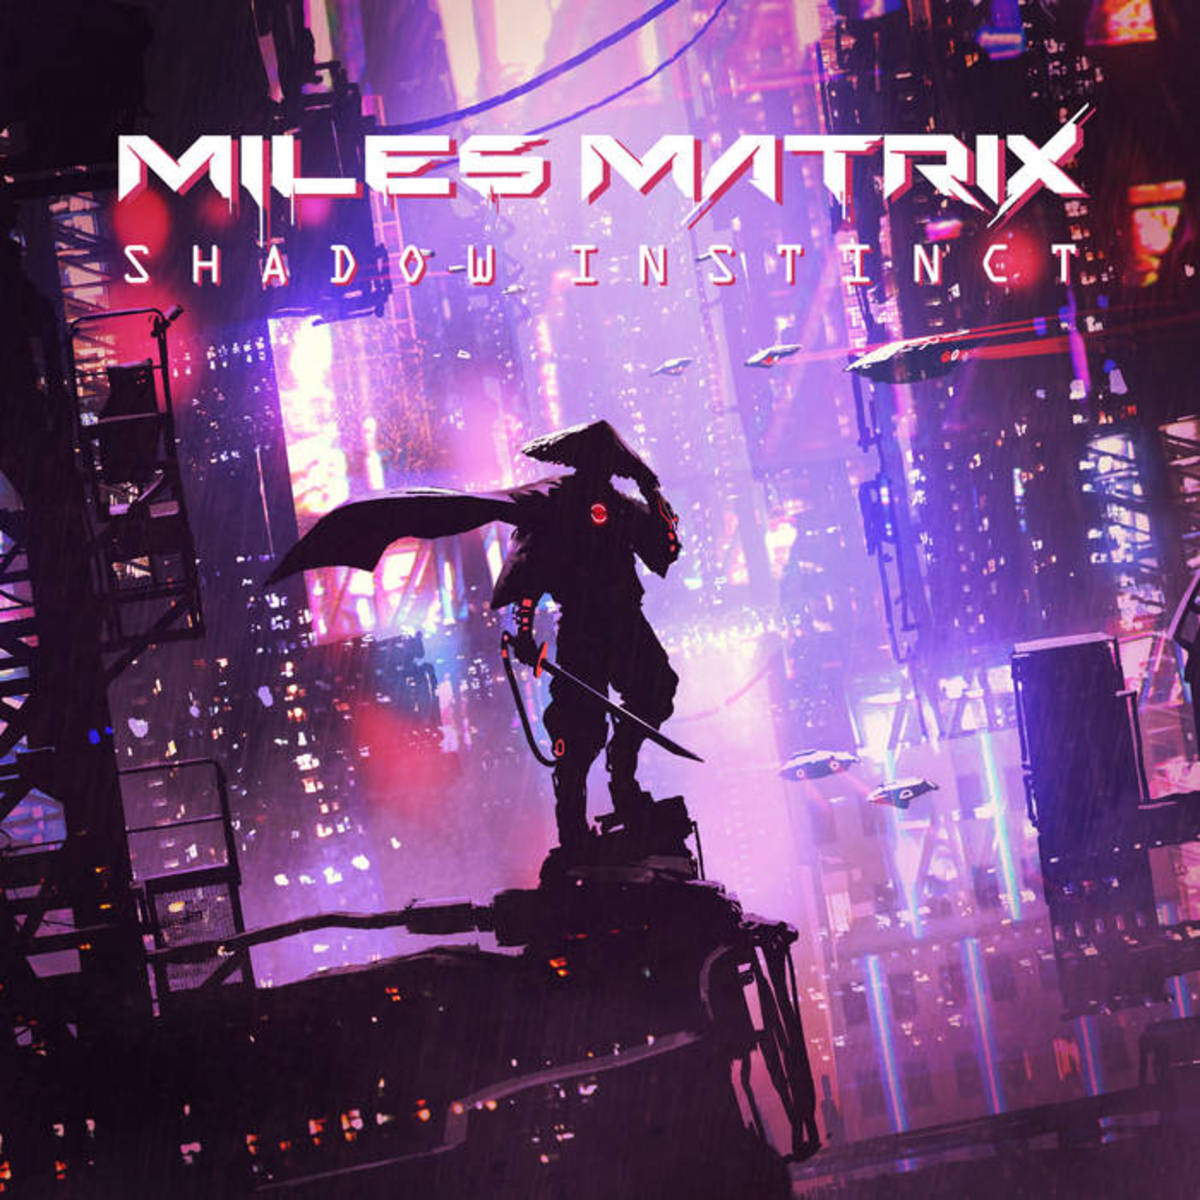 synth-single-review-shadow-instinct-by-miles-matrix